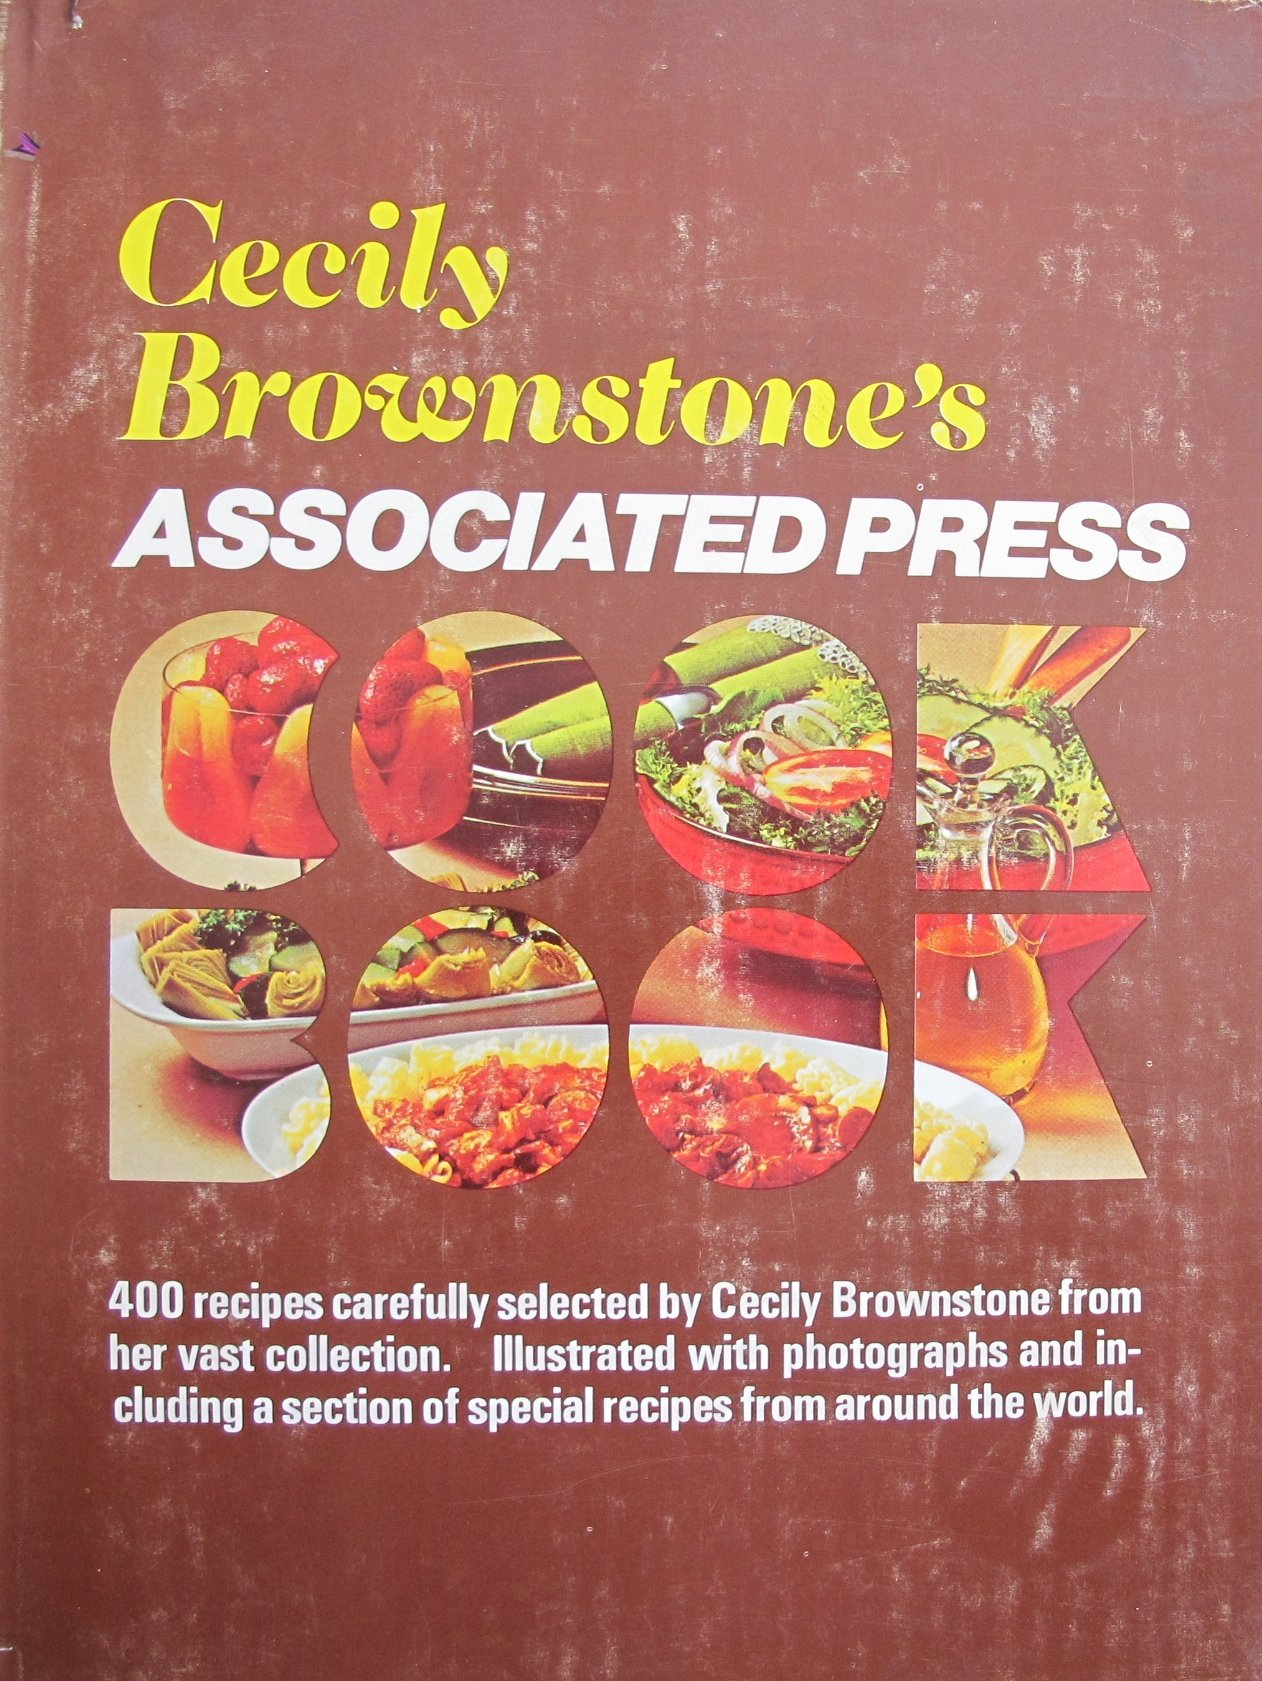 Cecily Brownstone's Associated Press Cookbook.